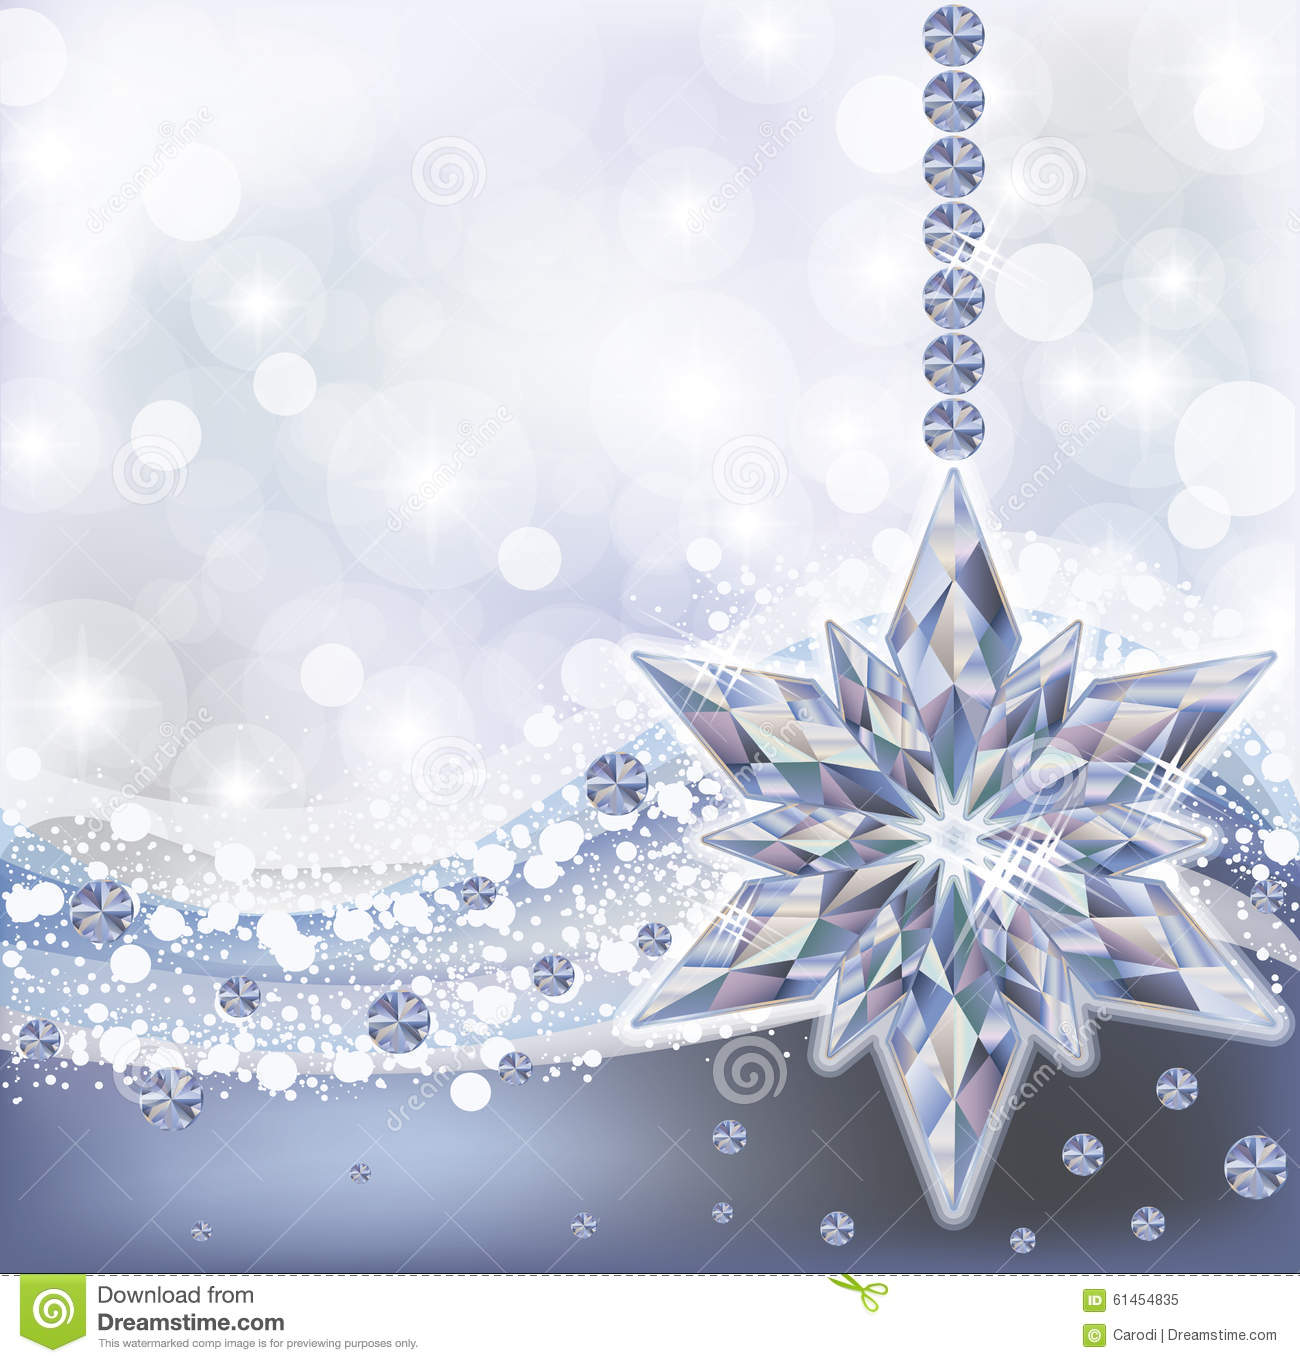 Frozen Wallpaper With Diamond Snowflake, Vector Stock ...